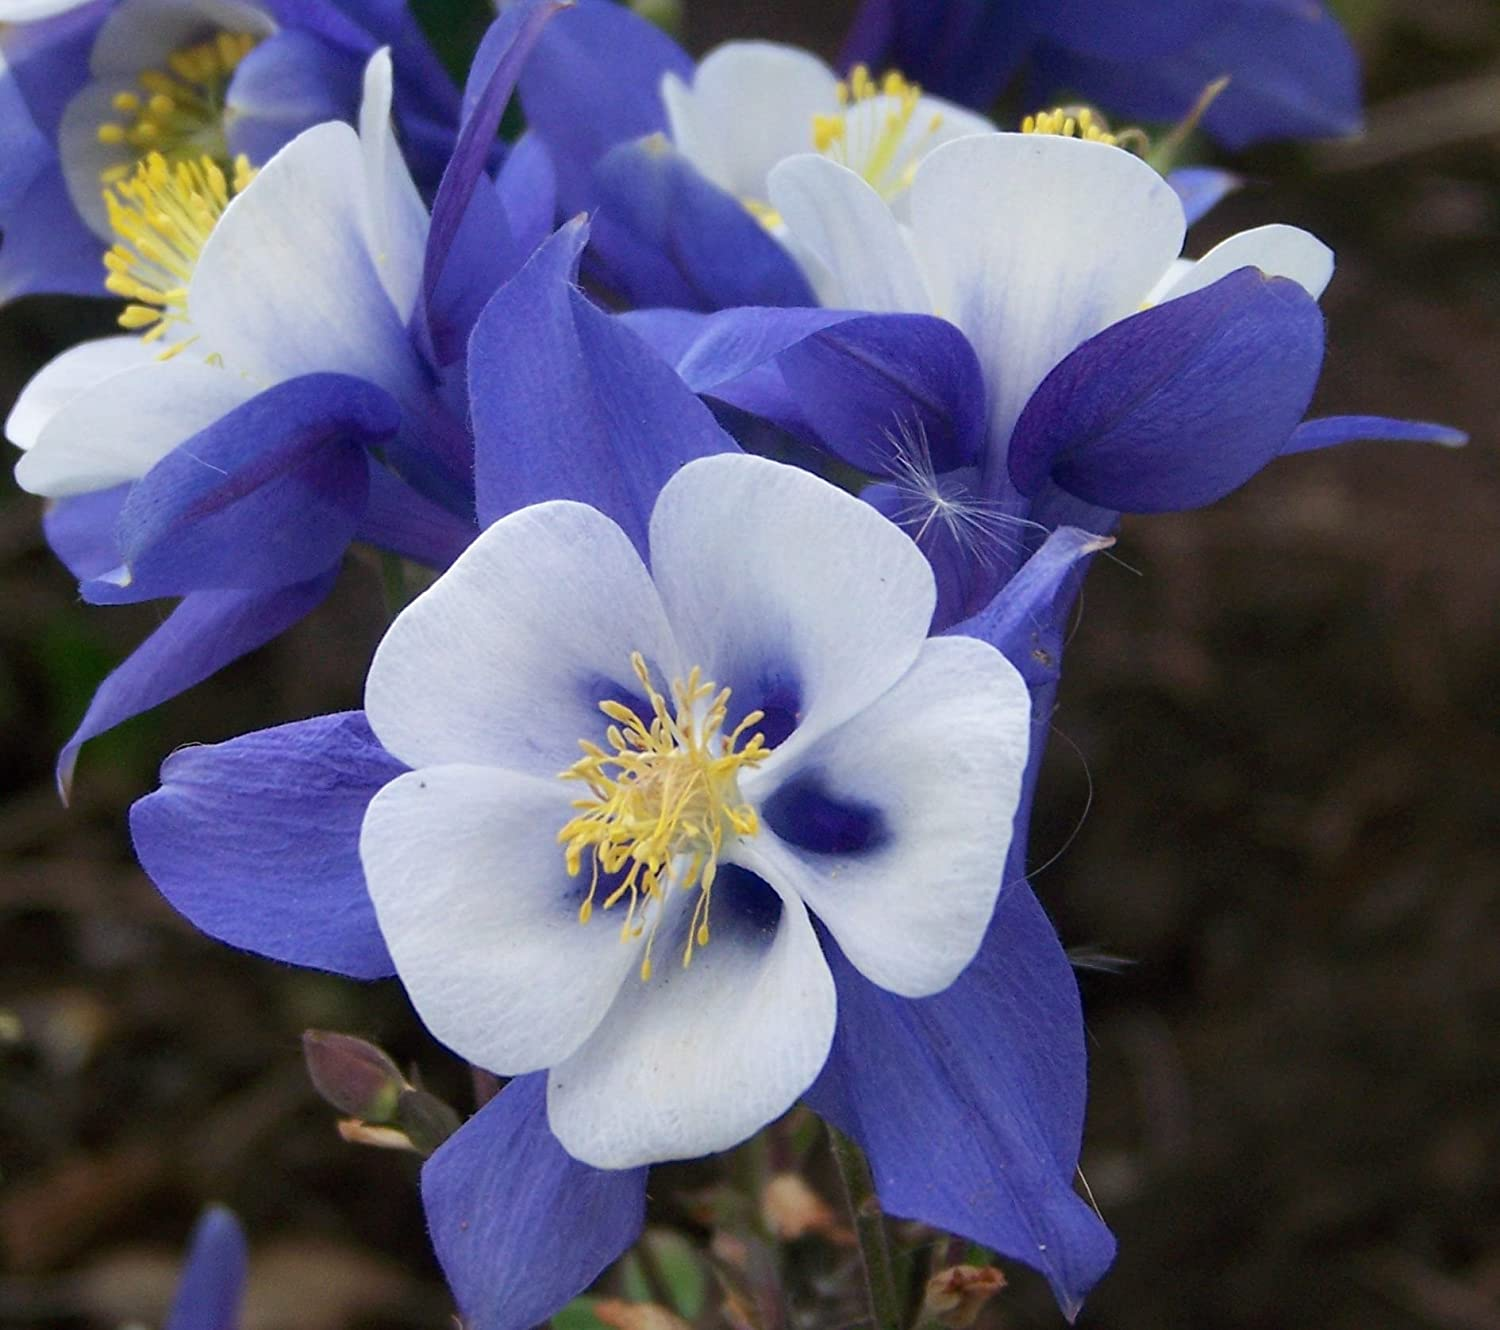 Amazon 100 columbine seed mckana giants mix redyellowblue amazon 100 columbine seed mckana giants mix redyellowbluepinkwhite garden outdoor izmirmasajfo